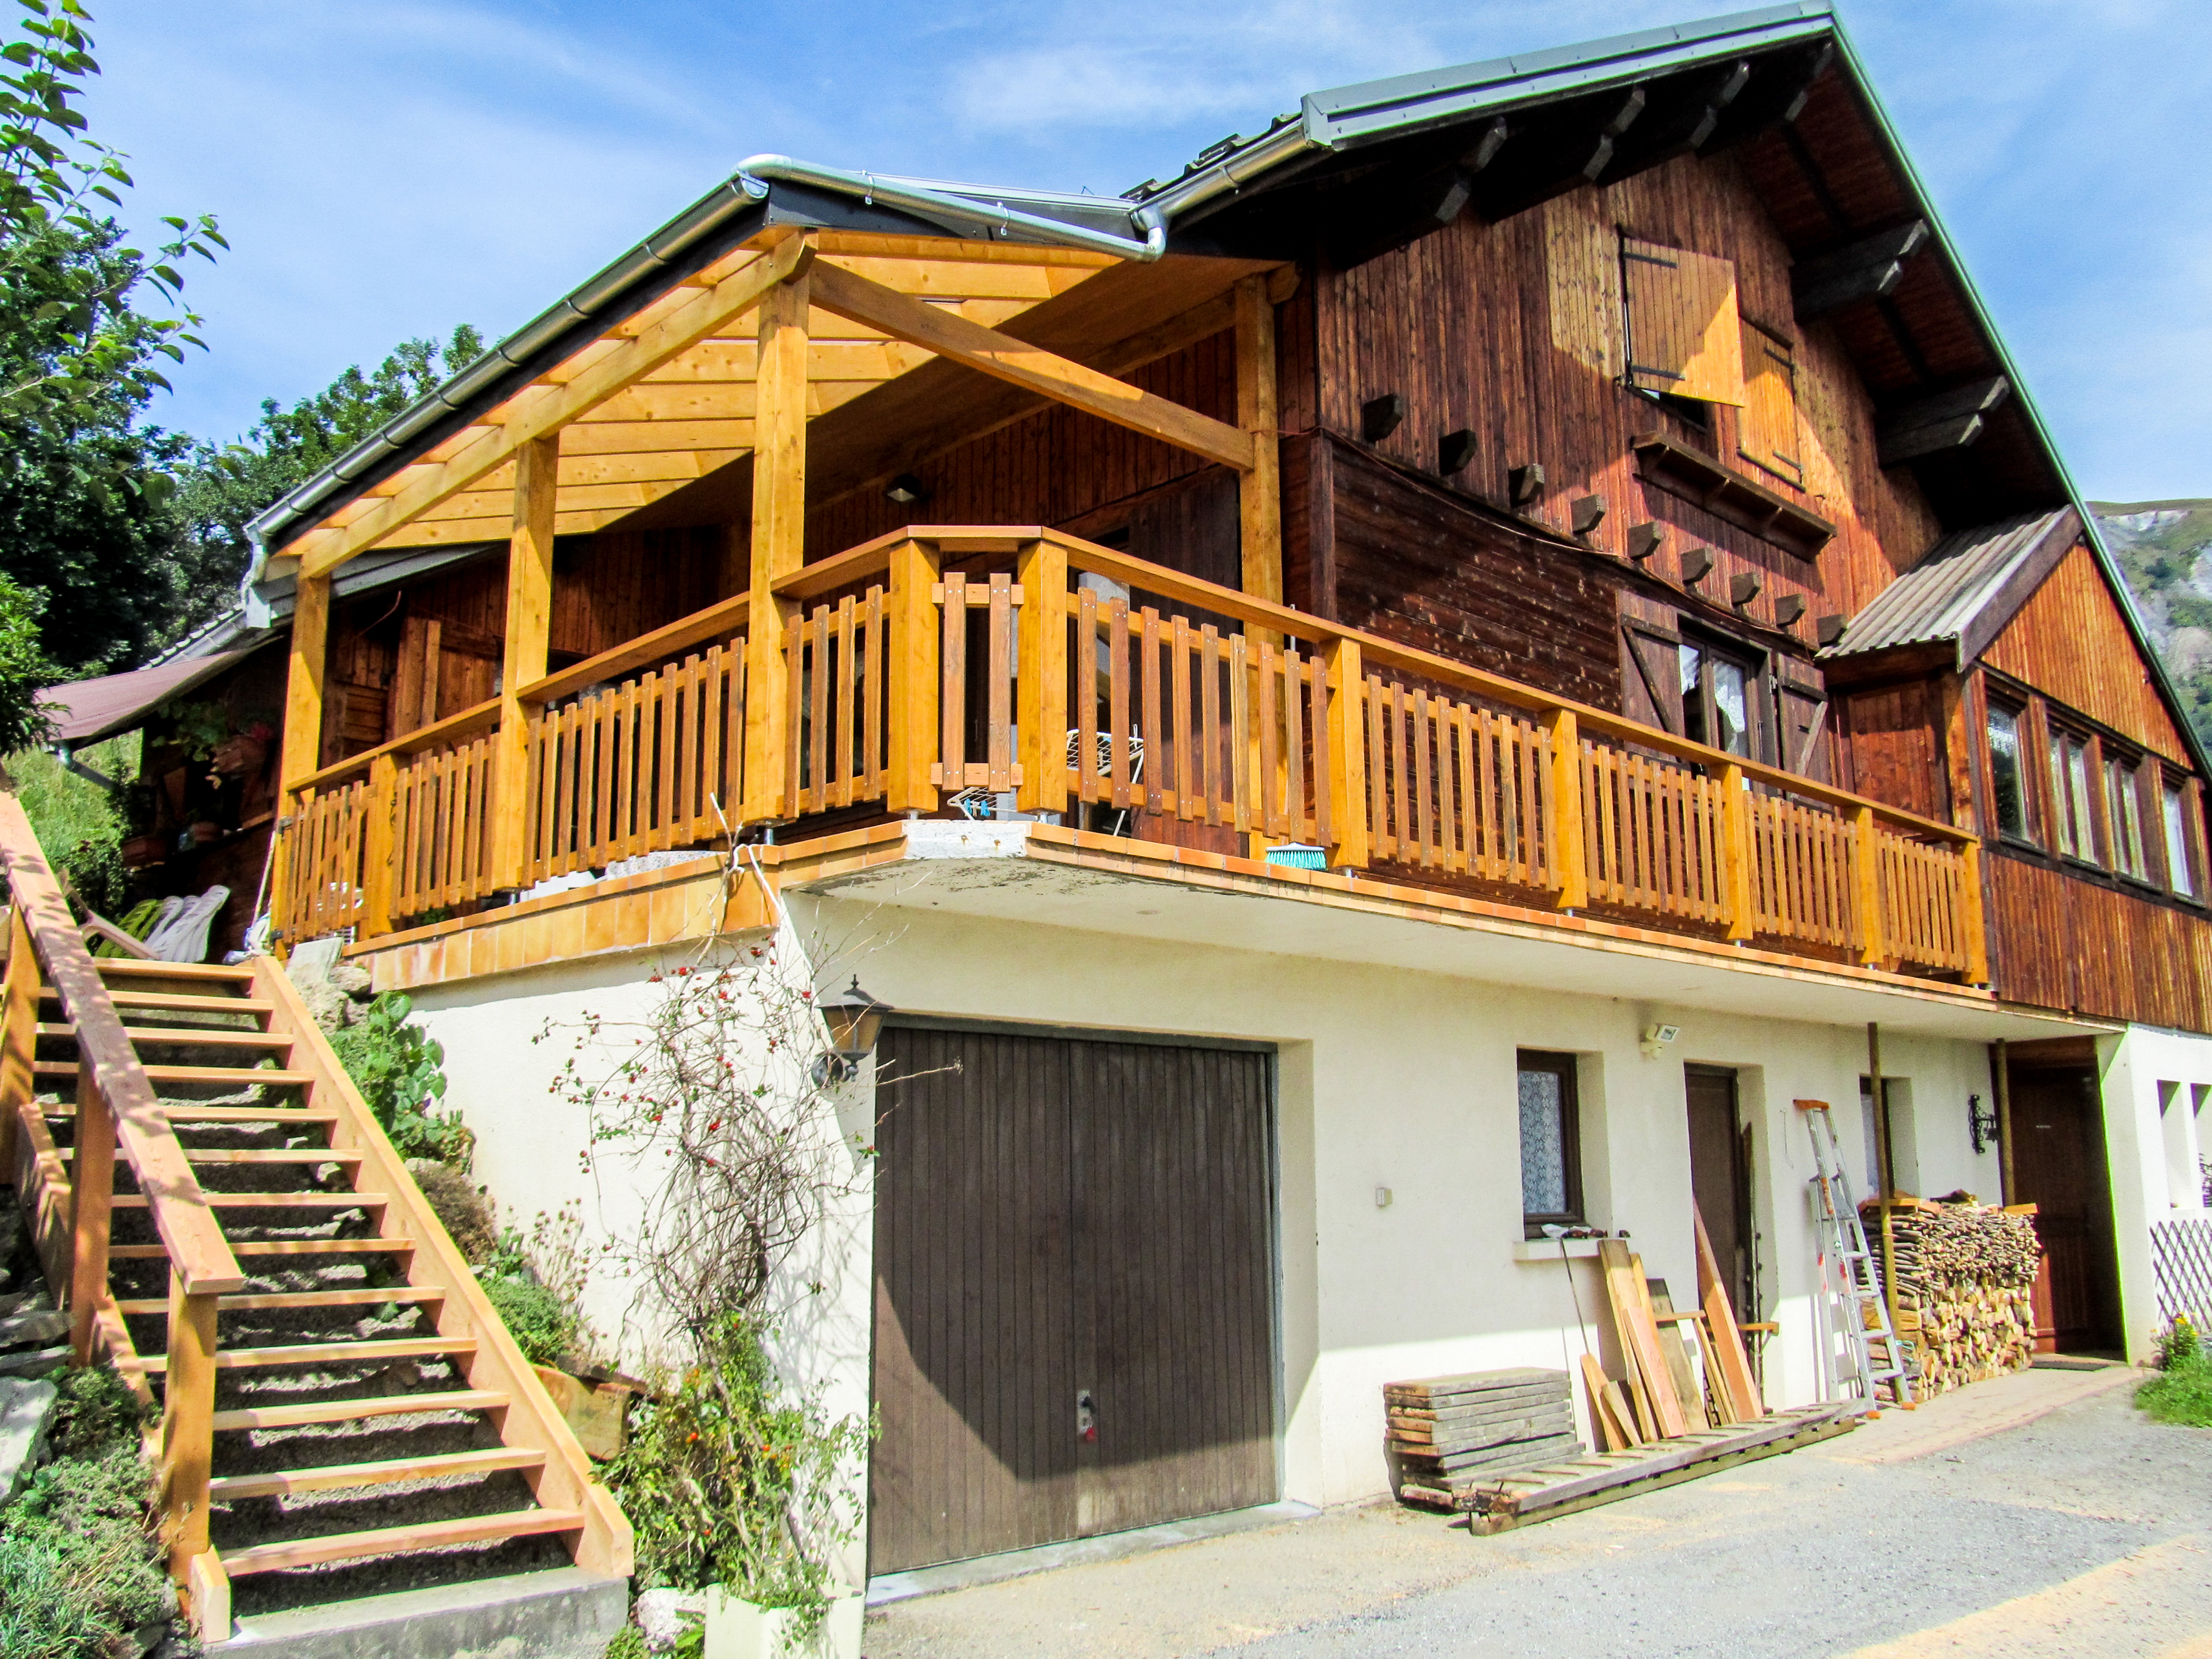 Charpentier-isere-france-tiny-house